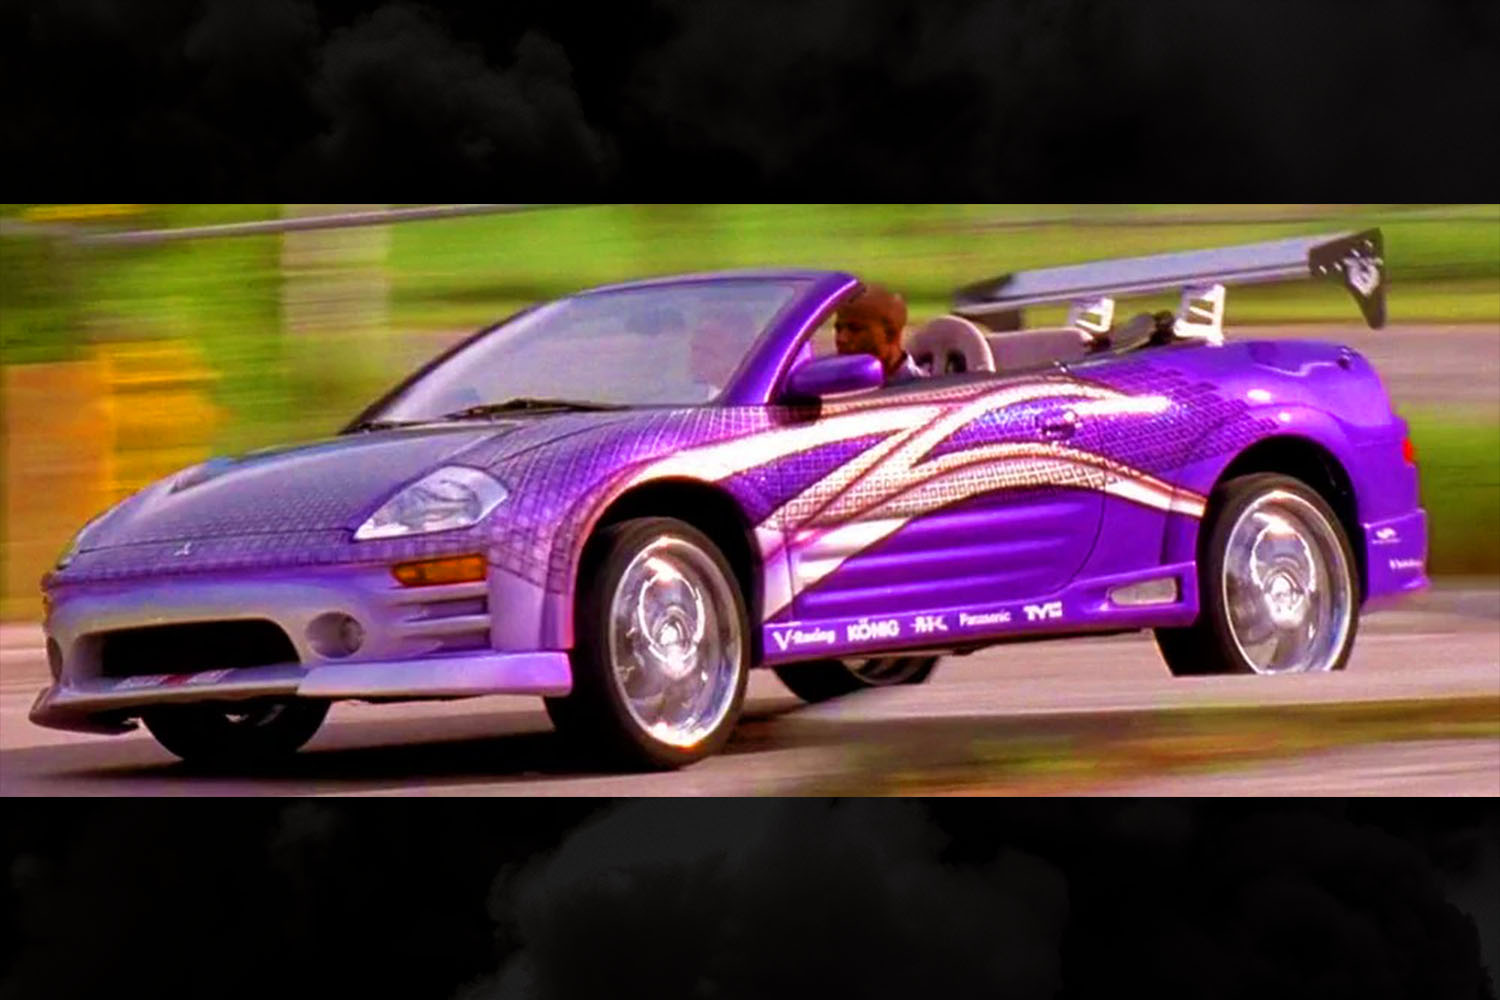 Roman Pearce (Tyrese Gibson) driving an electric purple 2003 Mitsubishi Eclipse Spyder GTS in 2 Fast 2 Furious